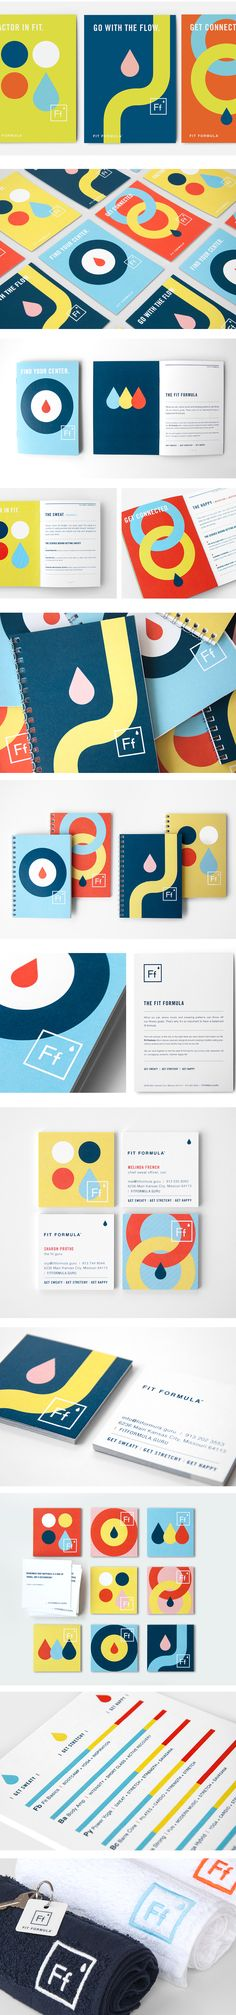 Fit Formula | Branding, Copywriting, Design, Illustration, Interior Integration, Marketing Materials, Name | Design Ranch